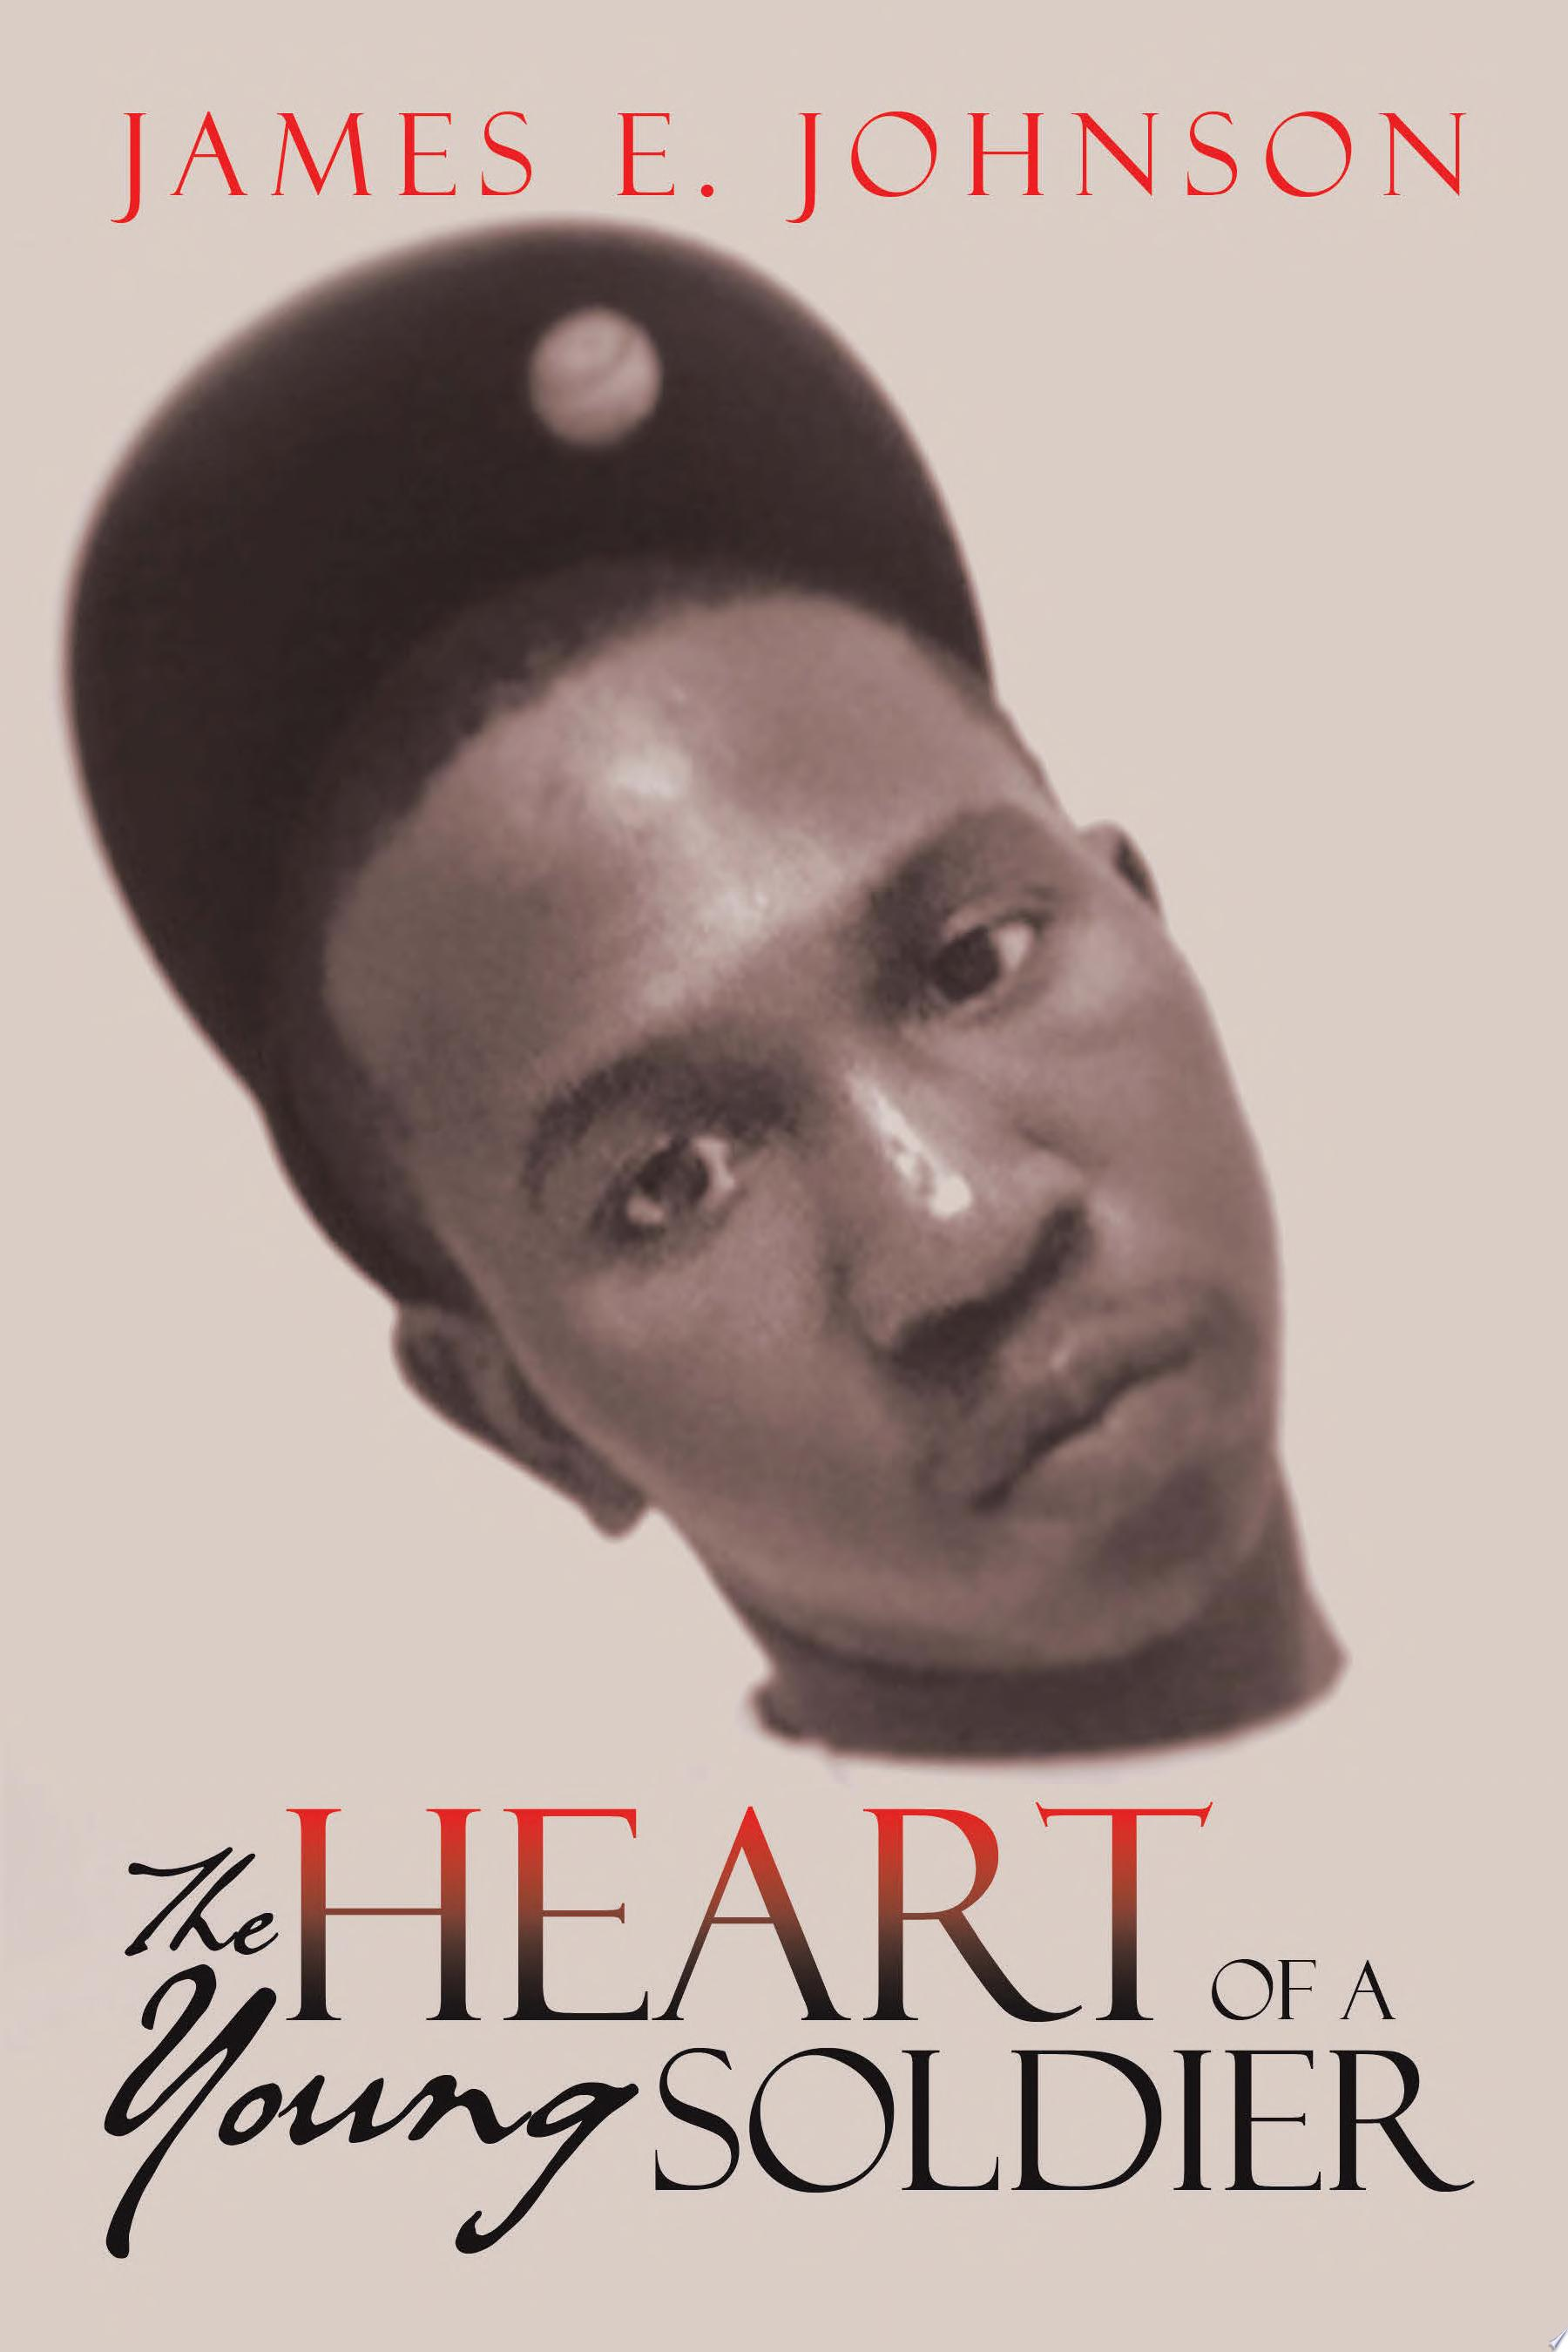 The Heart of a Young Soldier